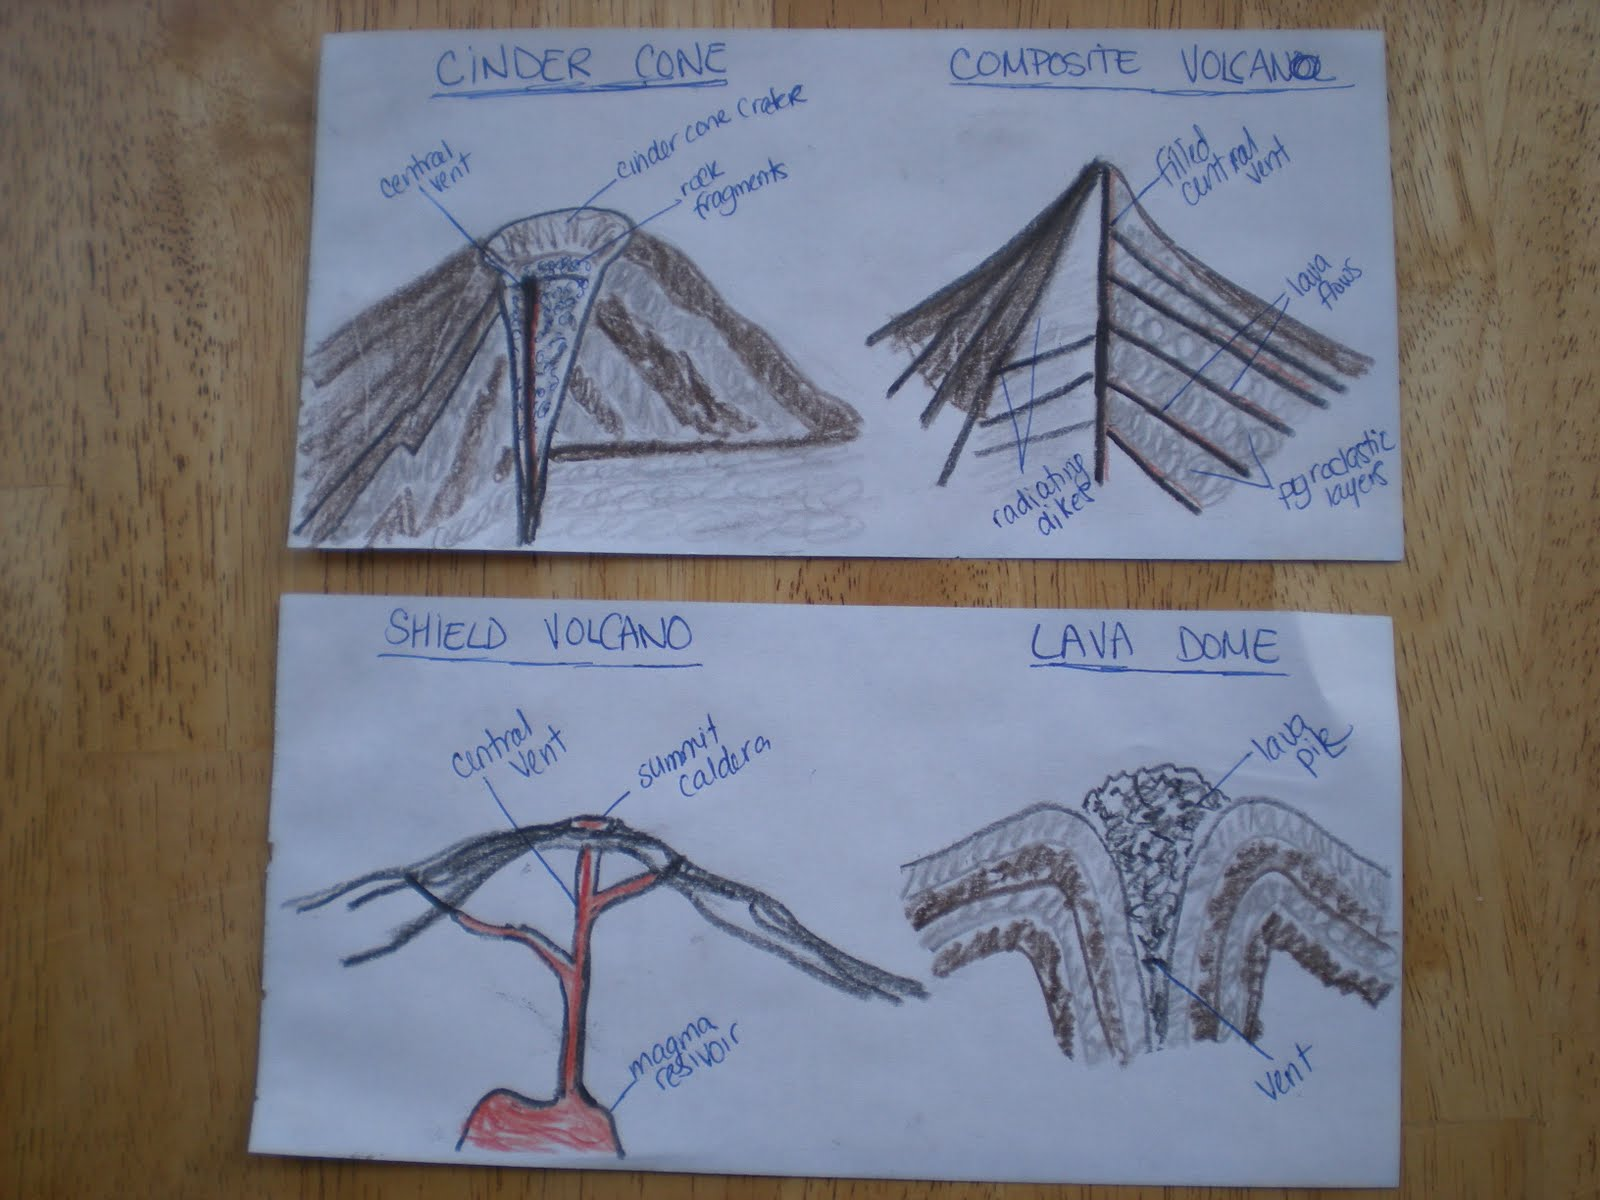 Capture california adventure 15 draw and label all 4 types of adventure 15 draw and label all 4 types of volcanoes in north america sciox Image collections